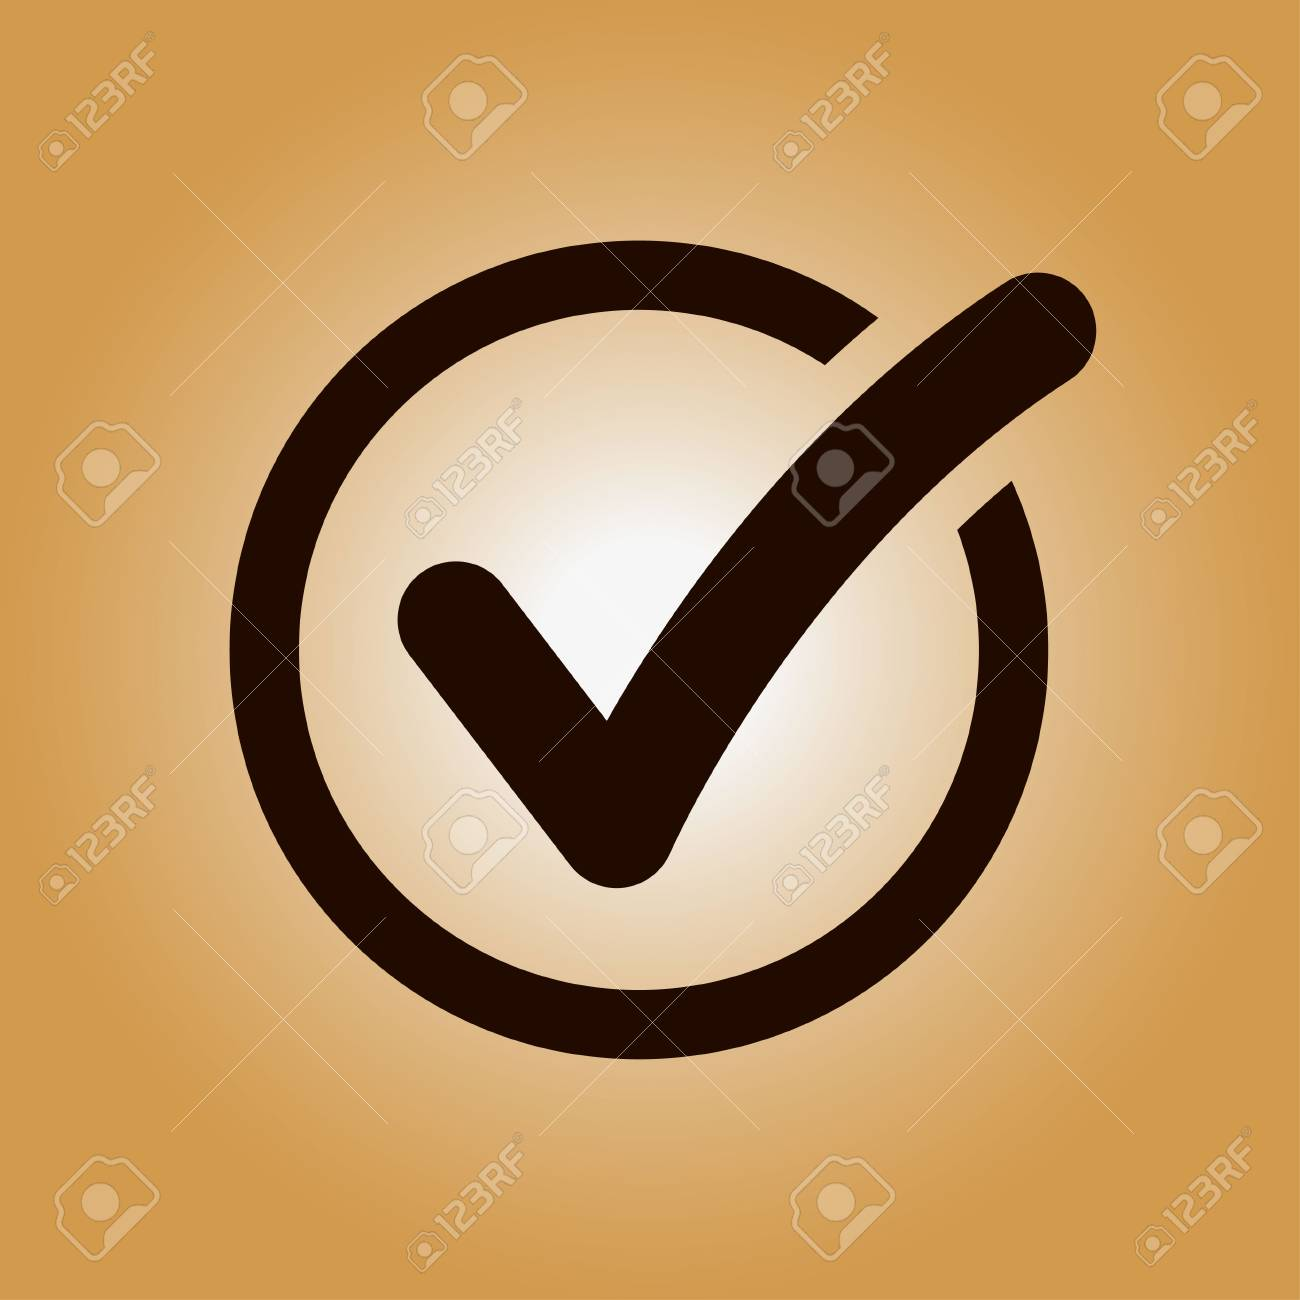 Check list button icon check mark in round sign royalty free check list button icon check mark in round sign stock vector 77982667 biocorpaavc Image collections